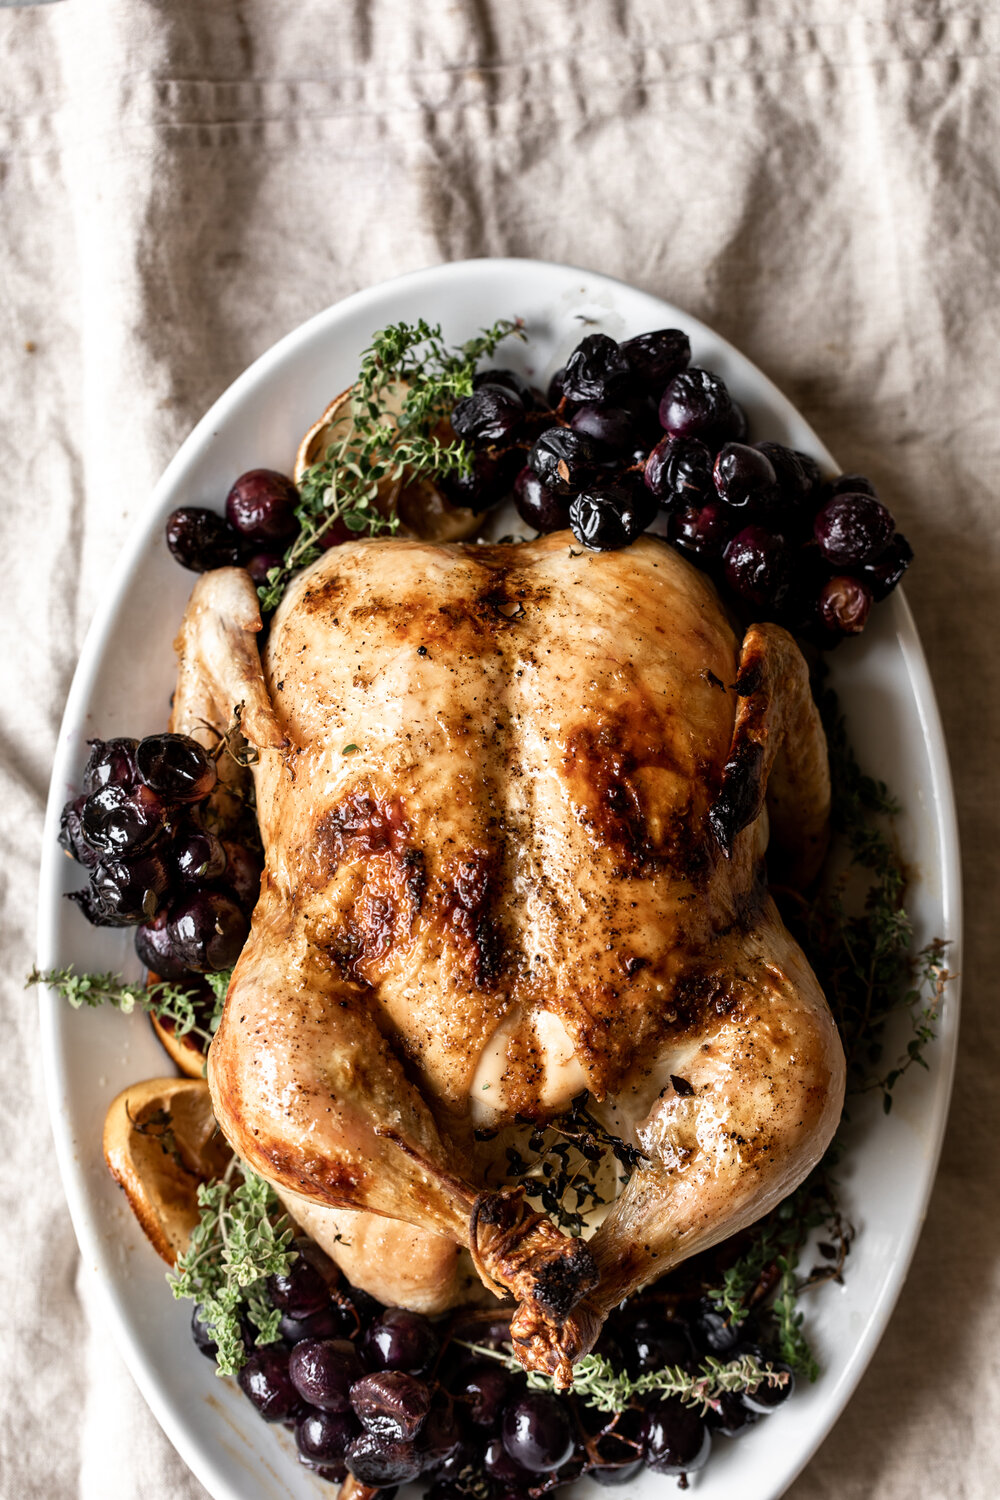 This whole roast chicken is cooked with grapes, thyme and lemon for an easy and impressive seasonal entree.